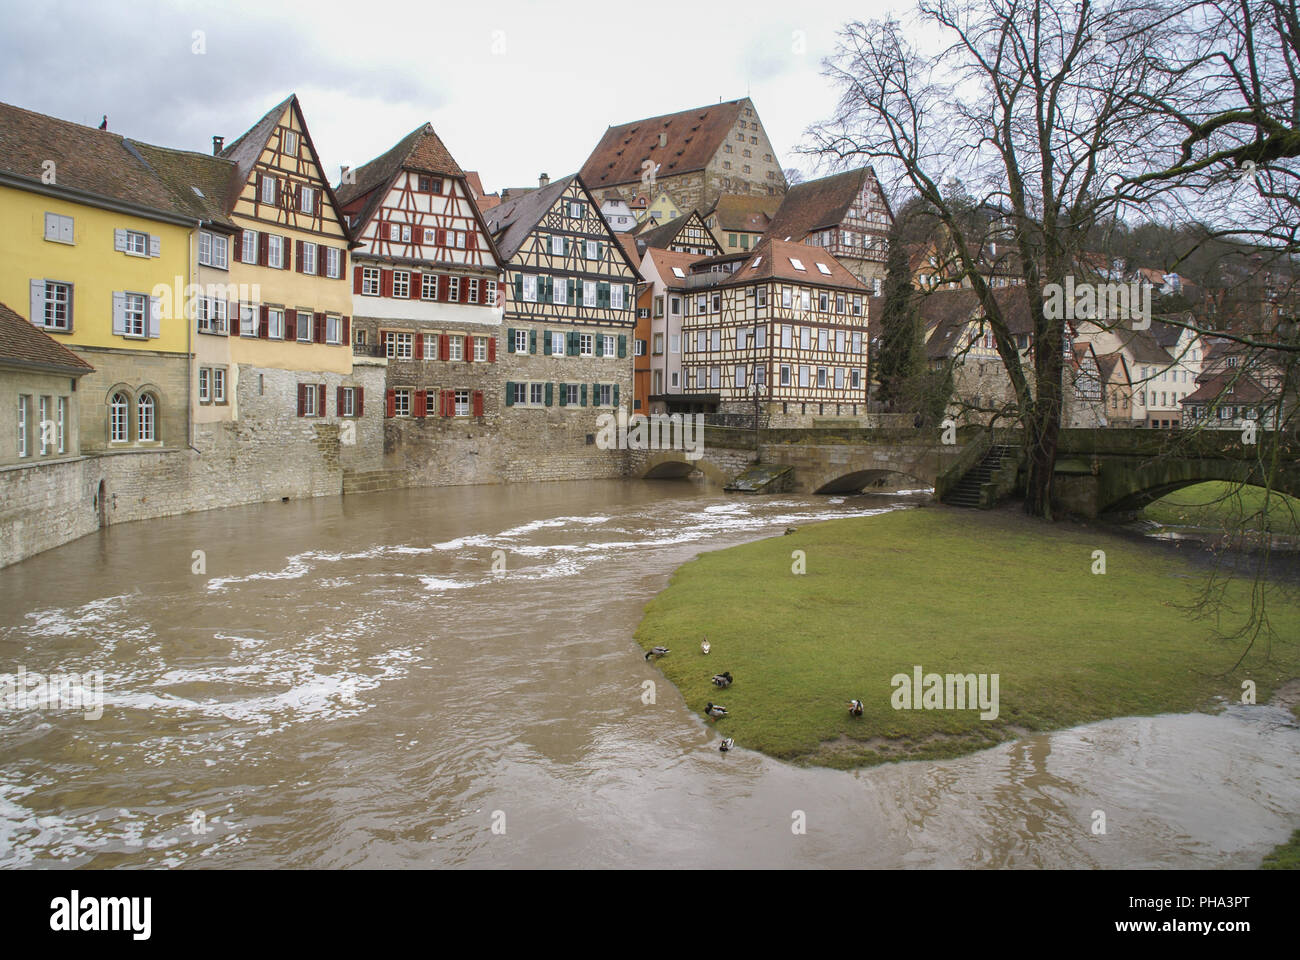 house in flood stock photos house in flood stock images alamy. Black Bedroom Furniture Sets. Home Design Ideas